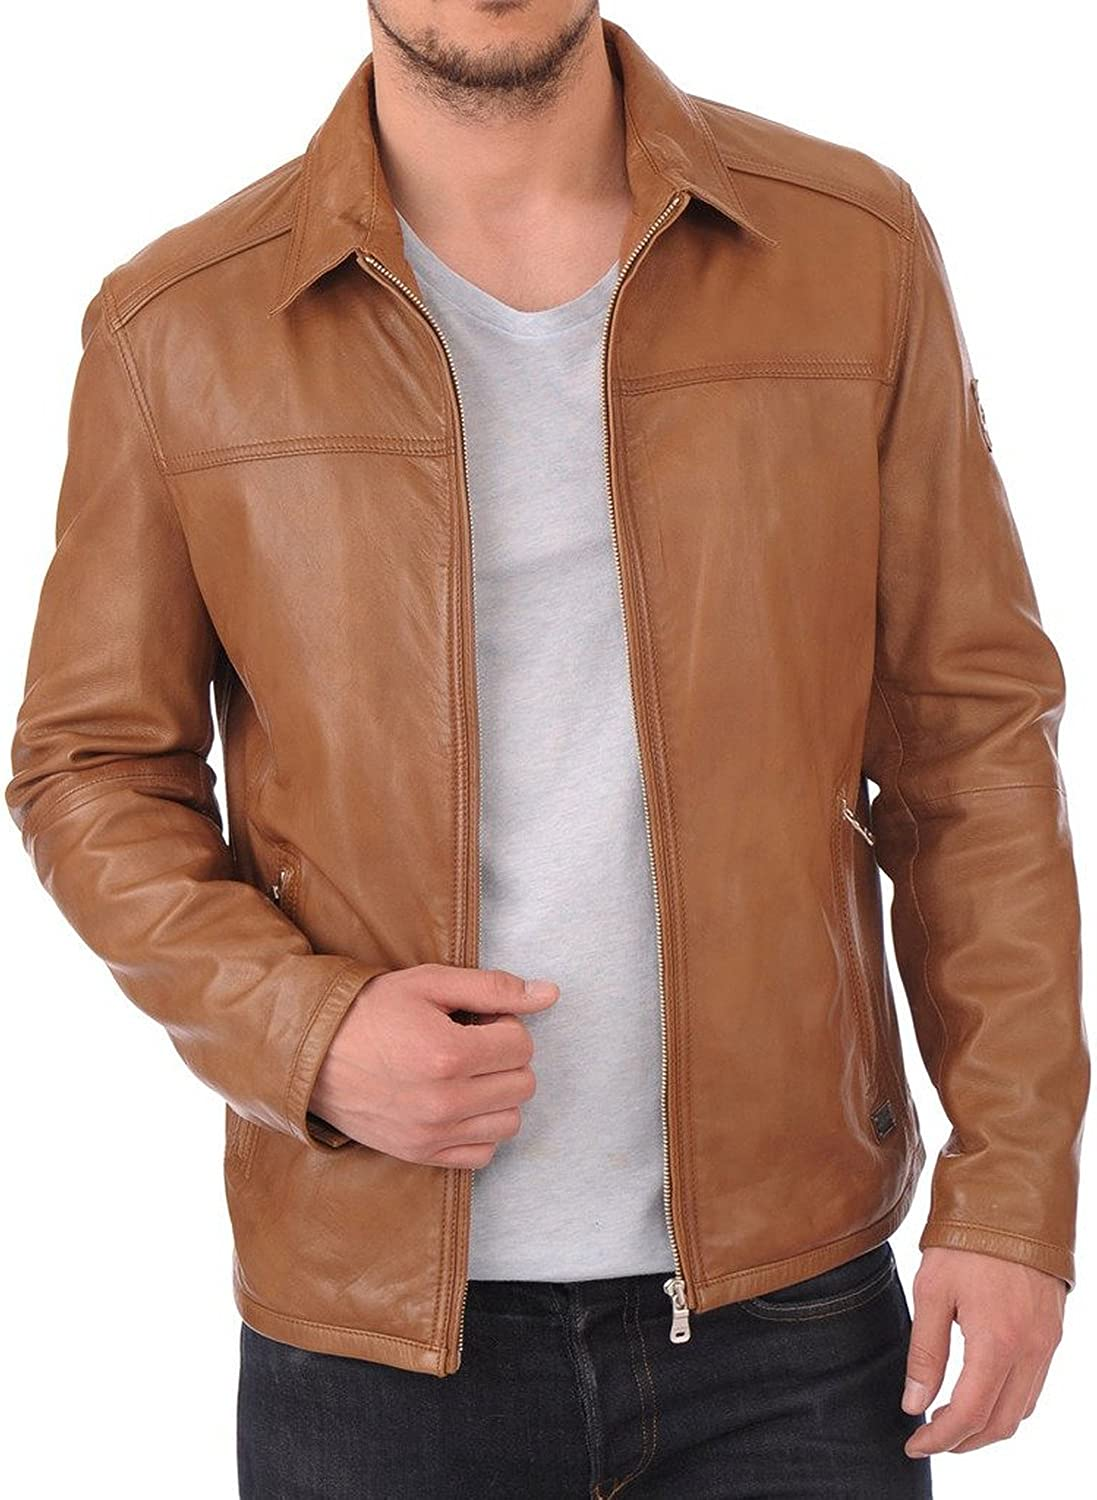 Kingdom Leather New Men Quilted Leather Jacket Soft Lambskin Biker Bomber X611